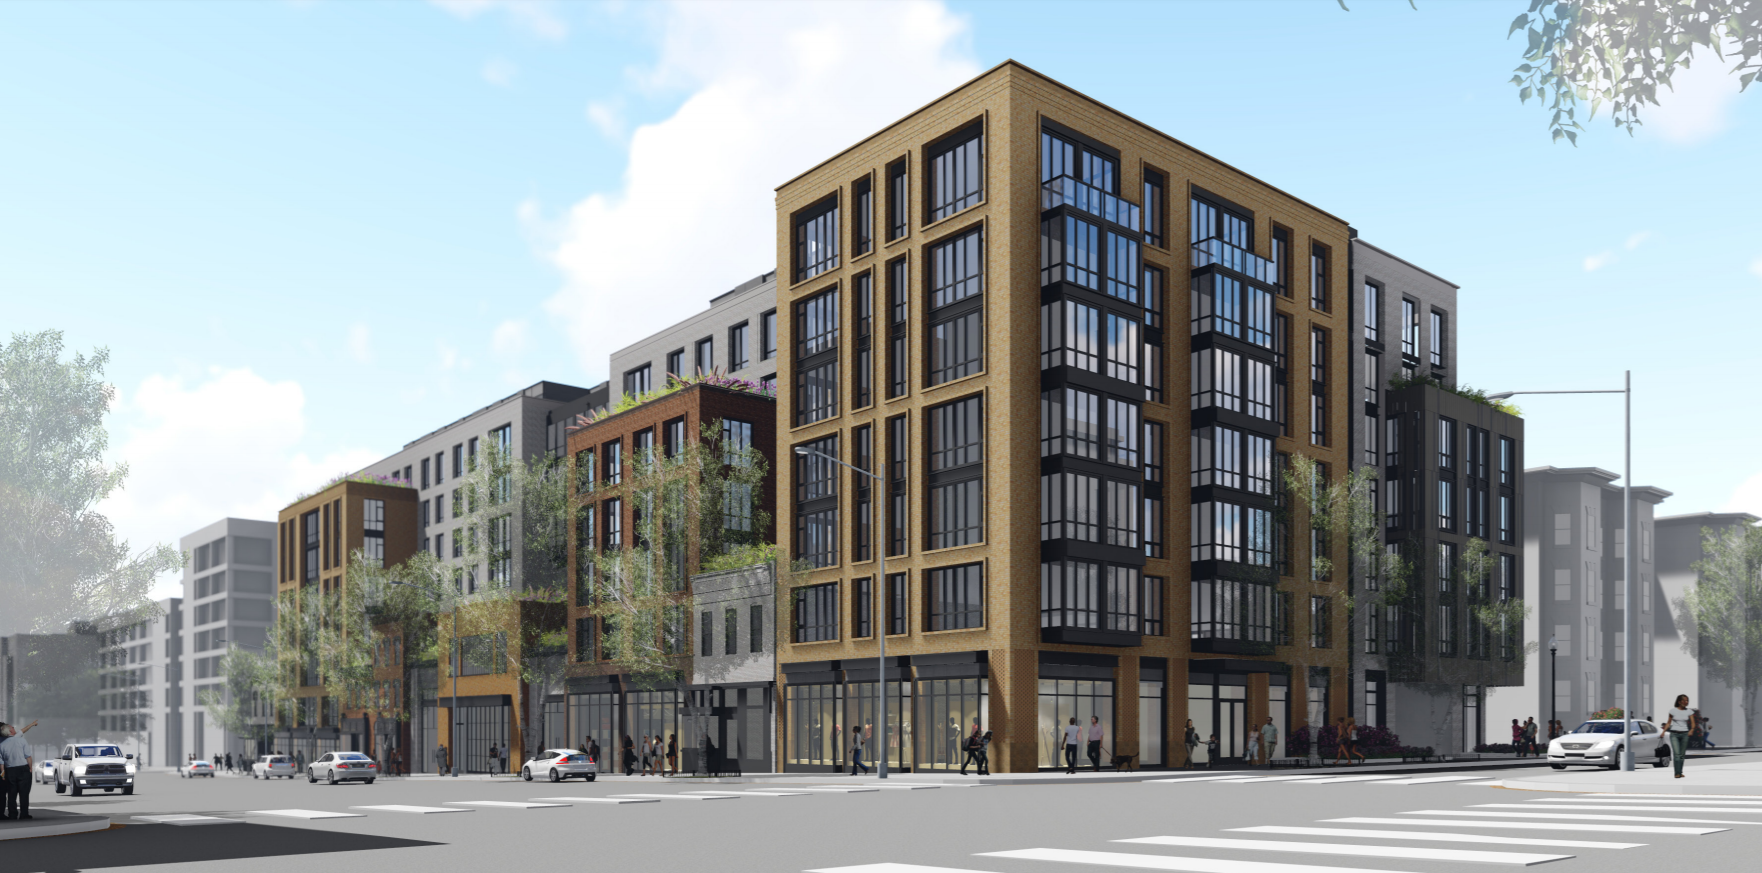 Raze Application Paves Way for Martha's Table Redevelopment on 14th Street: Figure 1